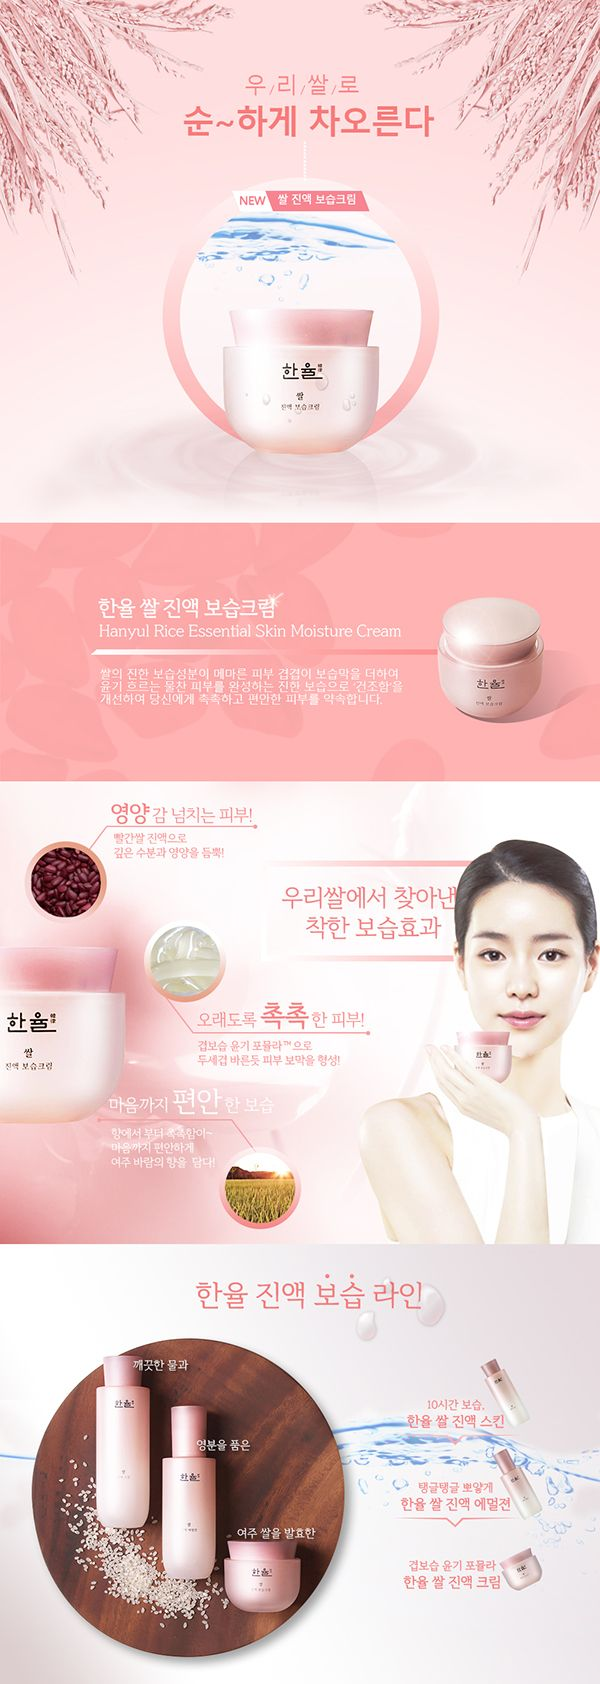 web event page, 연습, 한율, promotion, cosmatic